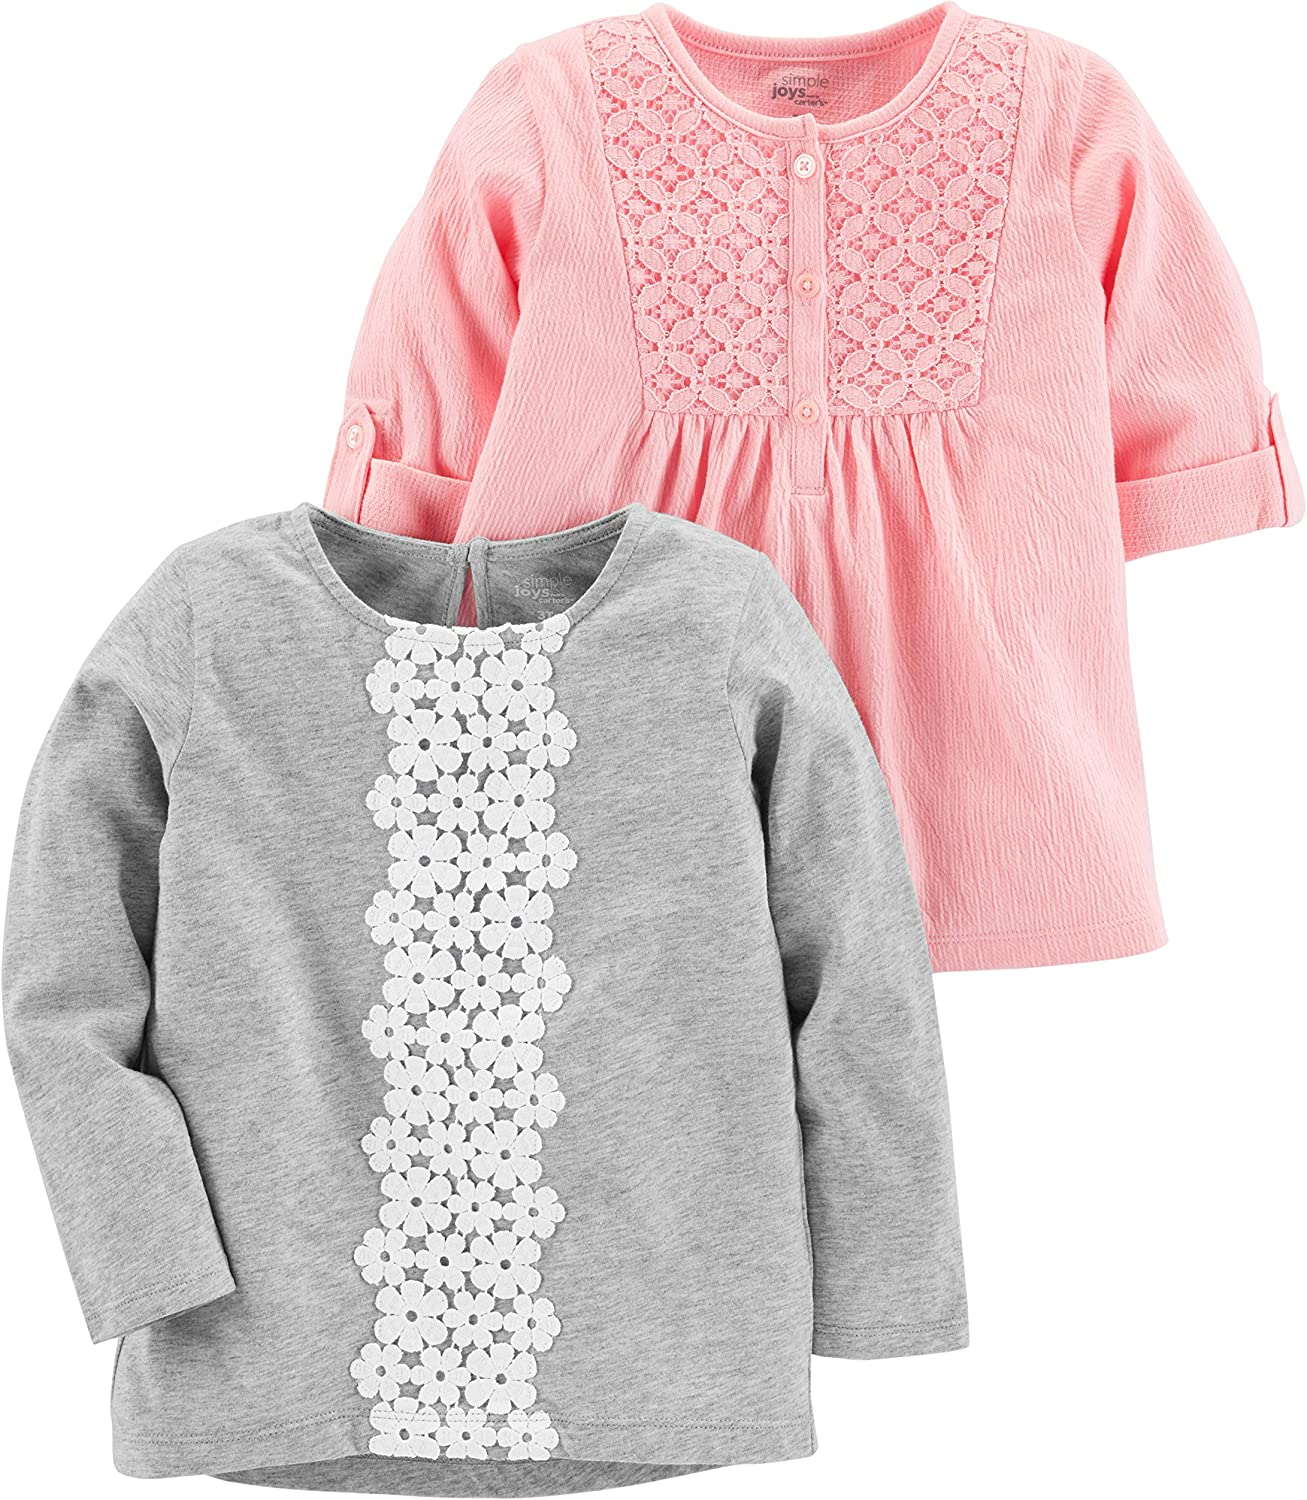 Simple Joys by Carters Toddler Girls 2-Pack Long Sleeve Tops